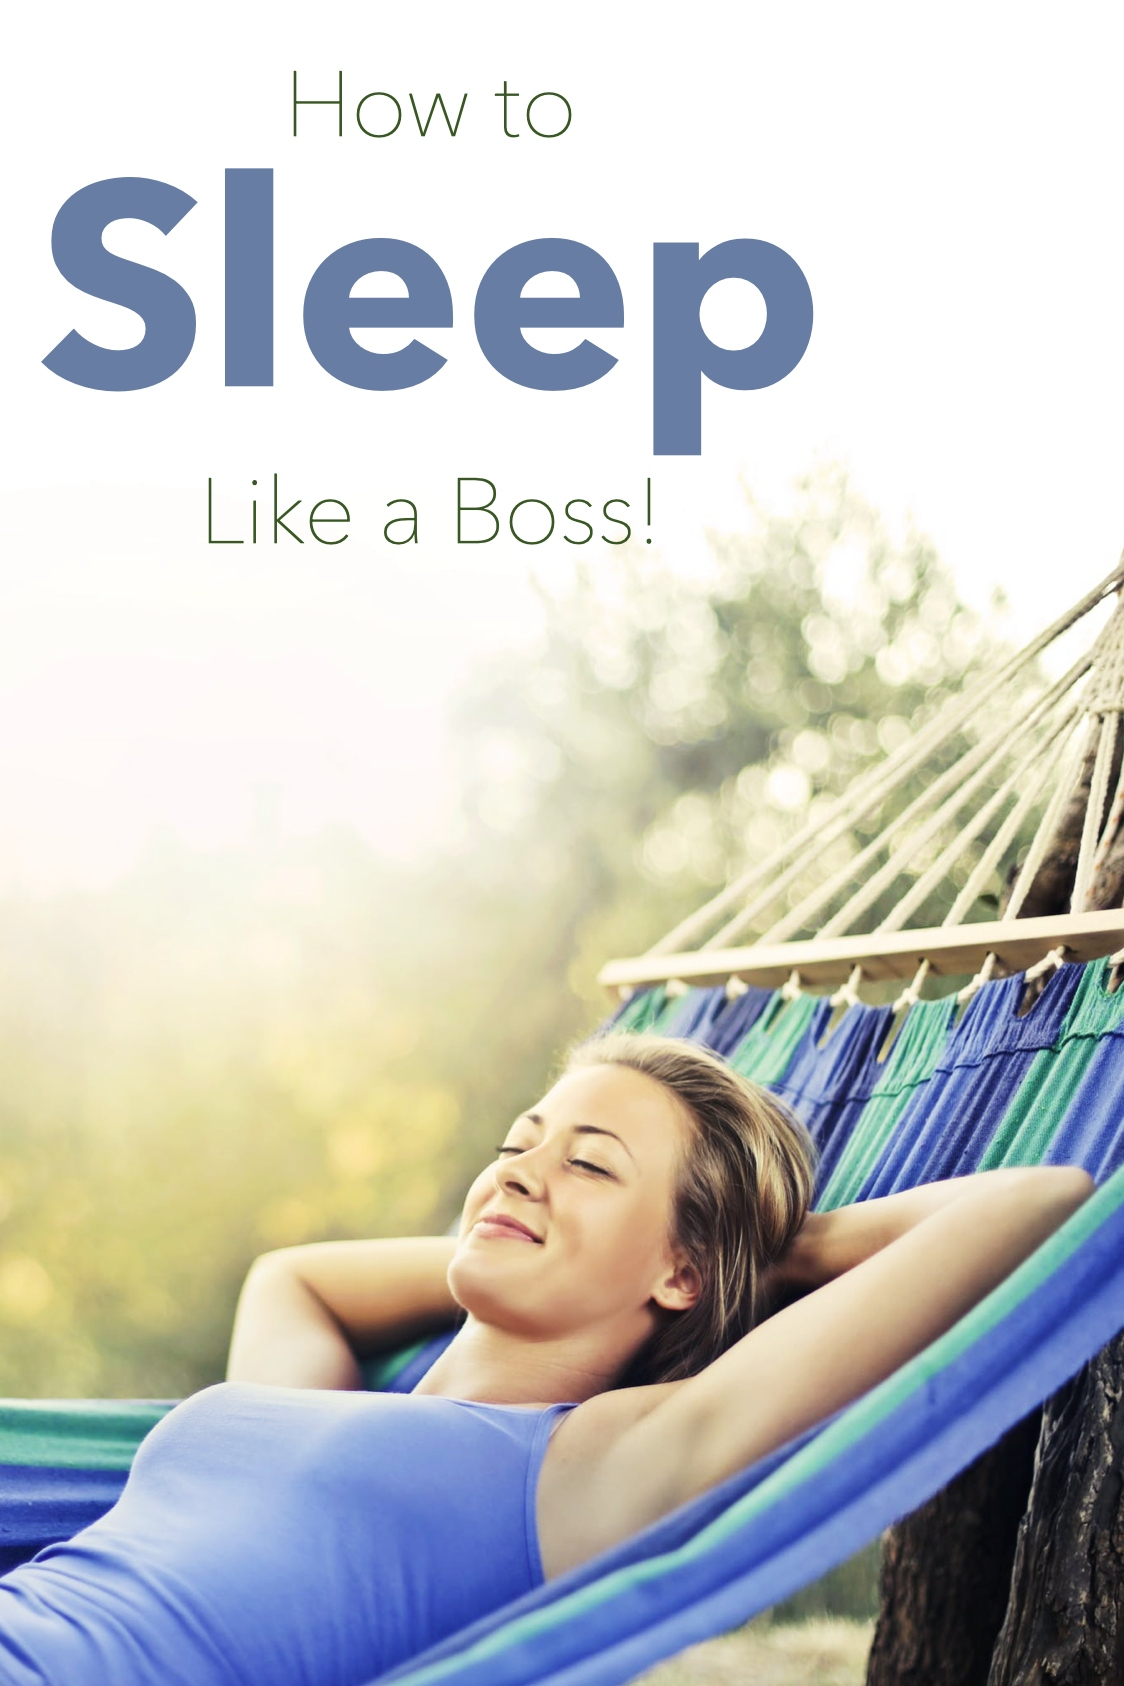 What can you do to improve your sleep?